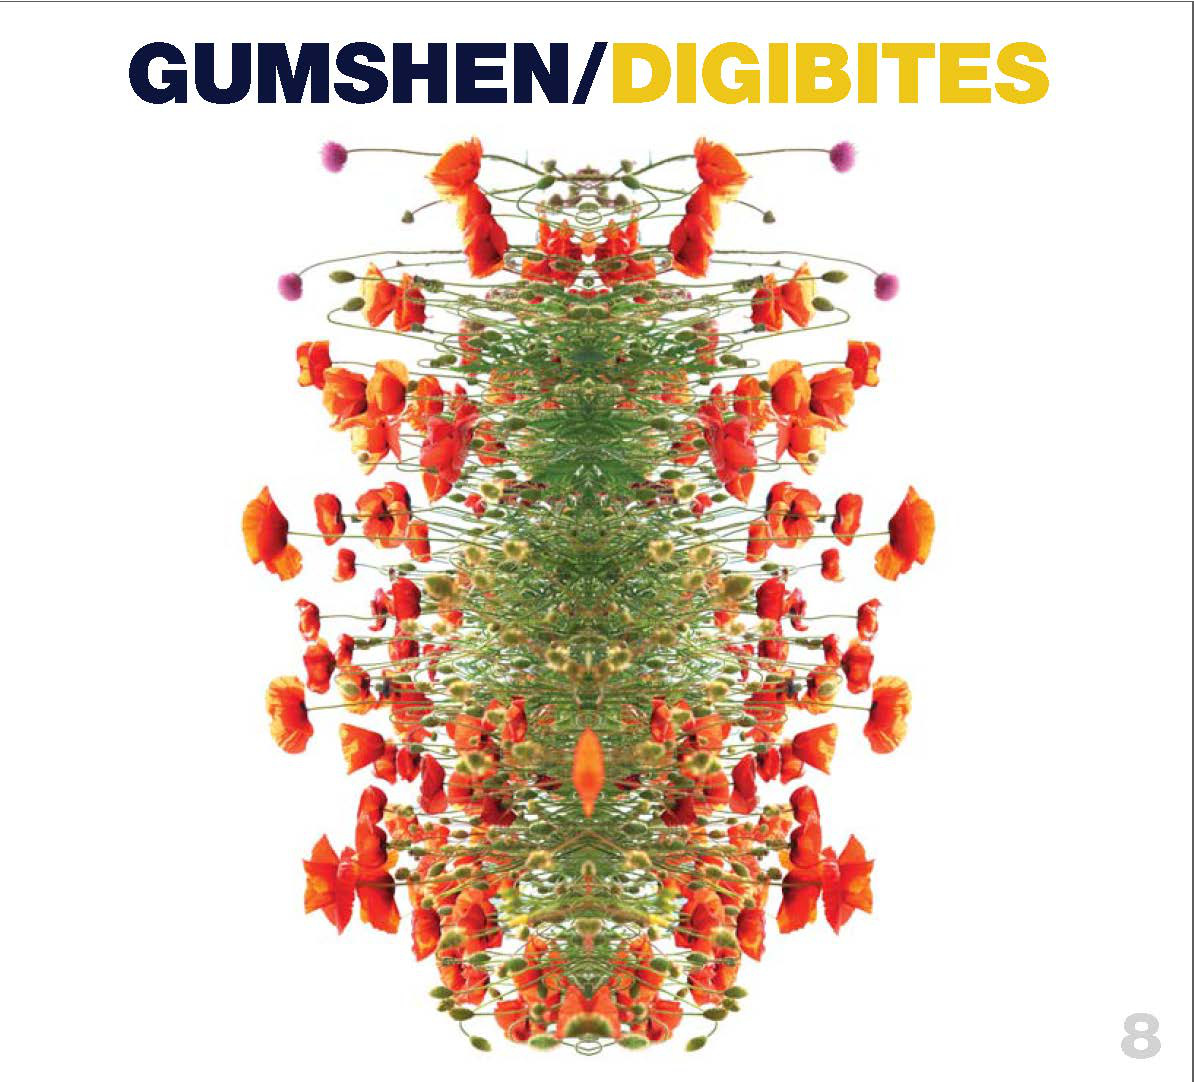 CD Review: DIGIBITES by Gumshen